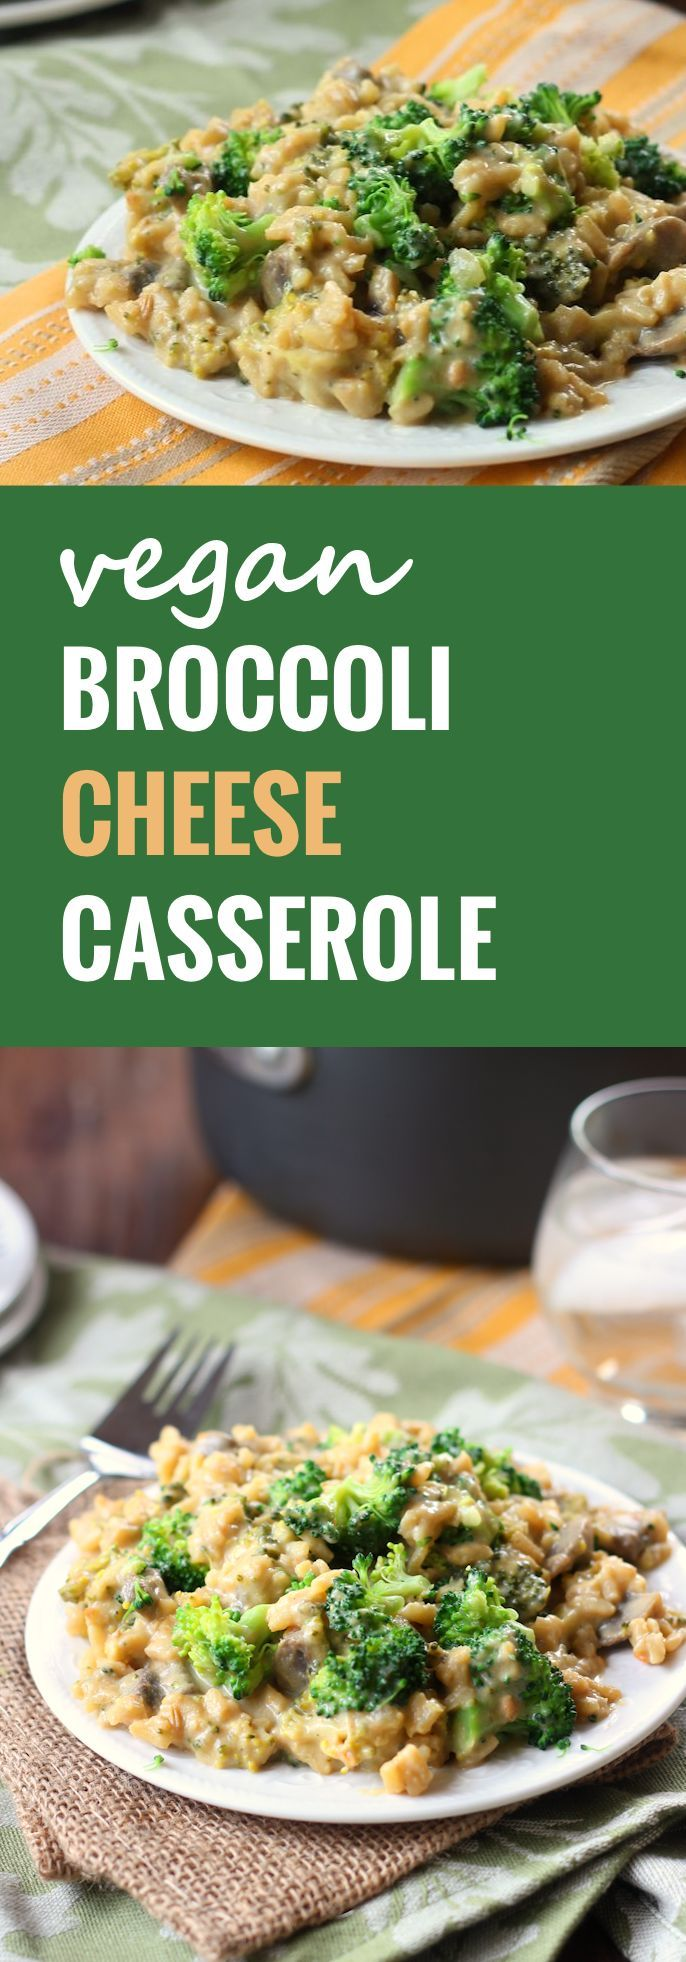 This 100% plant-based and junk food free vegan broccoli cheese casserole will knock your socks off!